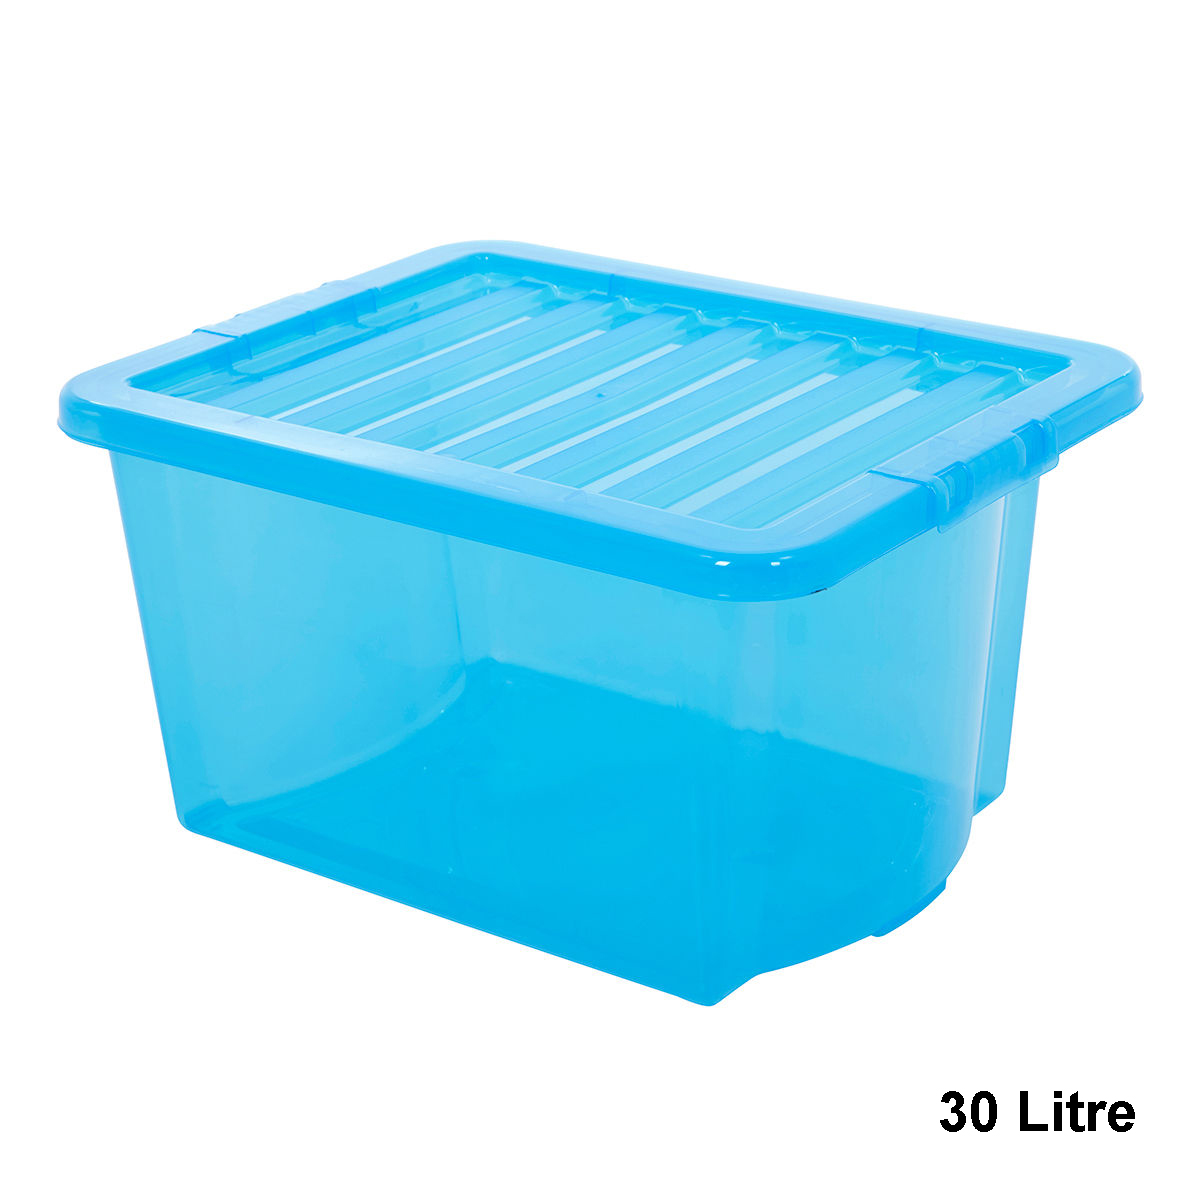 All Those Numbers Logistics Territory And Walmart likewise 5ed310f10d8b6974 as well 202678129 together with Office Storage Boxes With Lids Minimalist furthermore 2. on office depot plastic containers